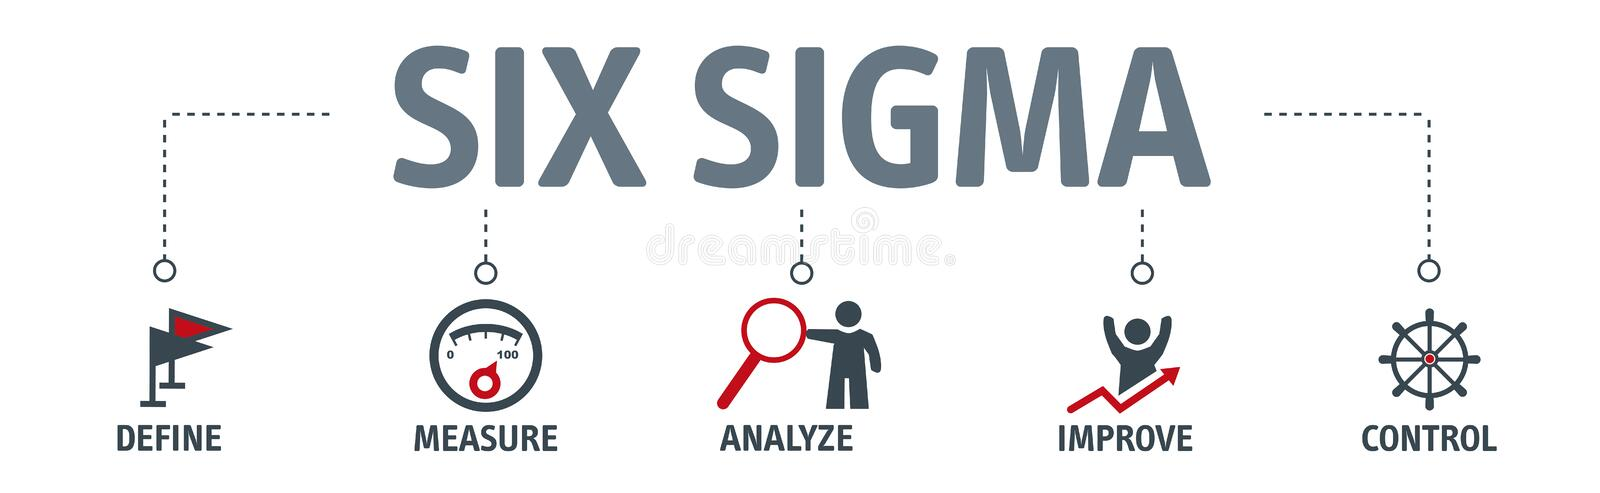 Lean six sigma concept vector illustration with text and related. Banner lean six sigma vector illustration concept with keywords and icons stock illustration